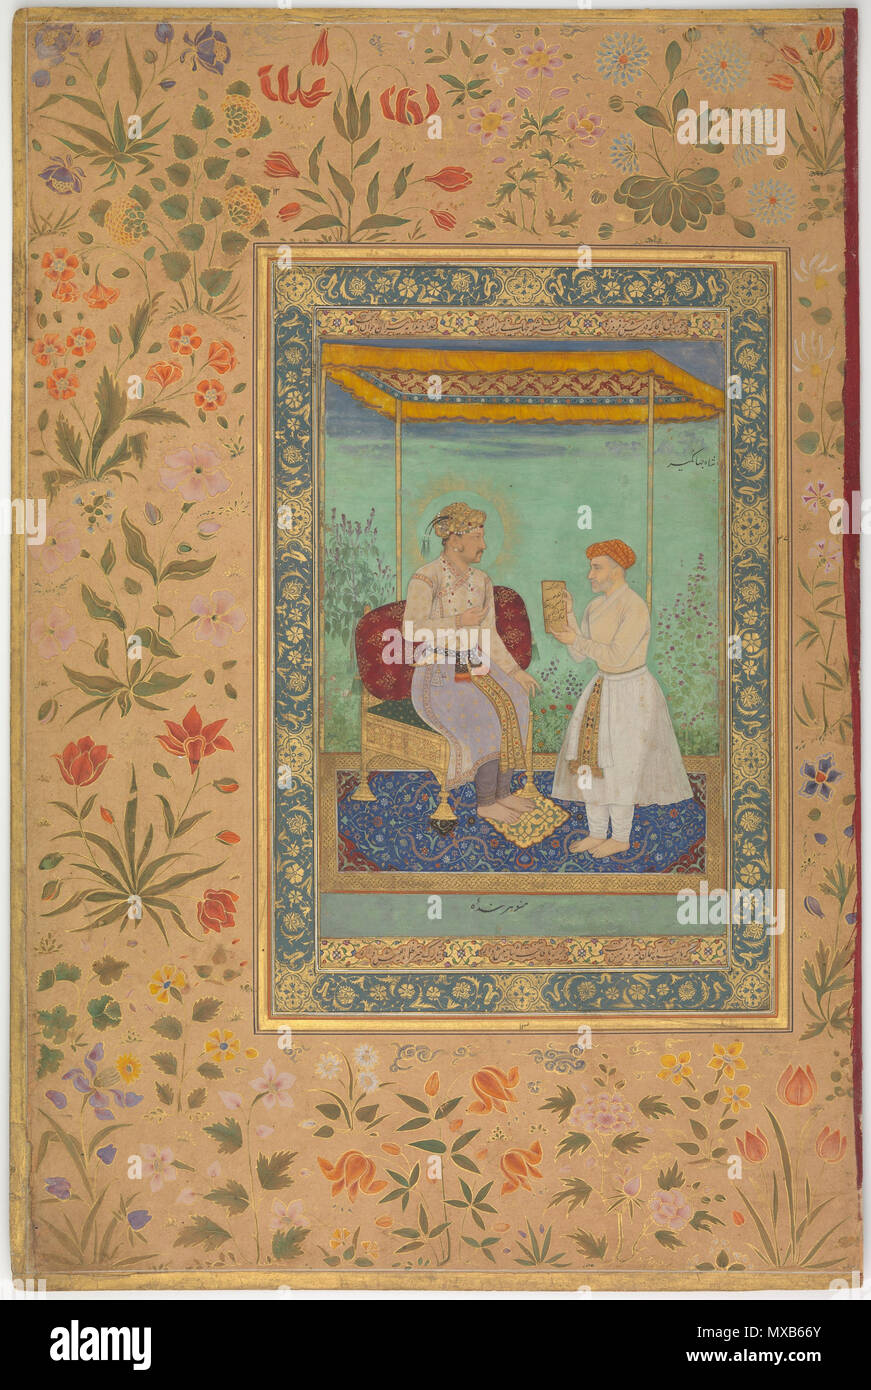 . 'Jahangir and His Vizier, I'timad al-Daula', Folio from the Shah Jahan Album Manohar (active ca. 1582–1624) Calligrapher:  Mir 'Ali Haravi (d. ca. 1550) Object Name:  Album leaf Reign:  Jahangir (1605–27), recto Date:  recto: ca. 1615; verso: ca. 1530–45 Geography:  India Medium:  Ink, opaque watercolor, and gold on paper Dimensions:  15 3/8 x 10 3/16in. (39 x 25.9cm) Mat: 19 1/4 x 14 1/4 in. (48.9 x 36.2 cm) Frame: 20 1/4 x 15 1/4 in. (51.4 x 38.7 cm) Classification:  Codices Credit Line:  Purchase, Rogers Fund and The Kevorkian Foundation Gift, 1955 Accession Number:  55.121.10.23 This art Stock Photo